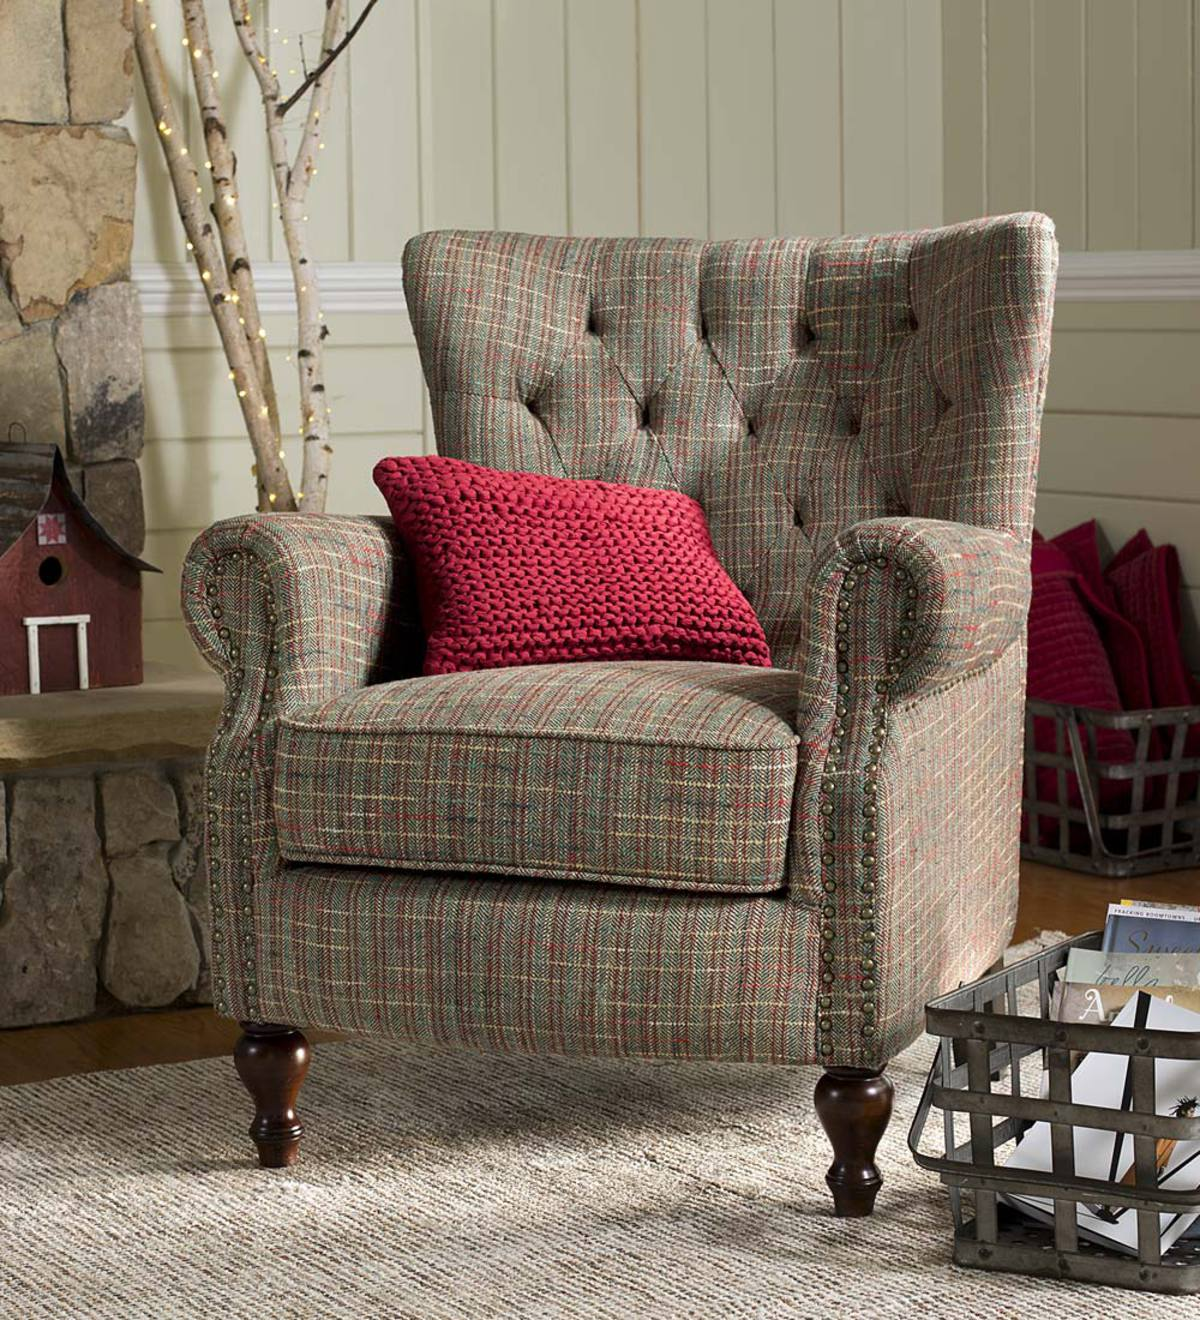 Plow And Hearth Furniture: Madison Upholstered Wingback Chair - Tweed